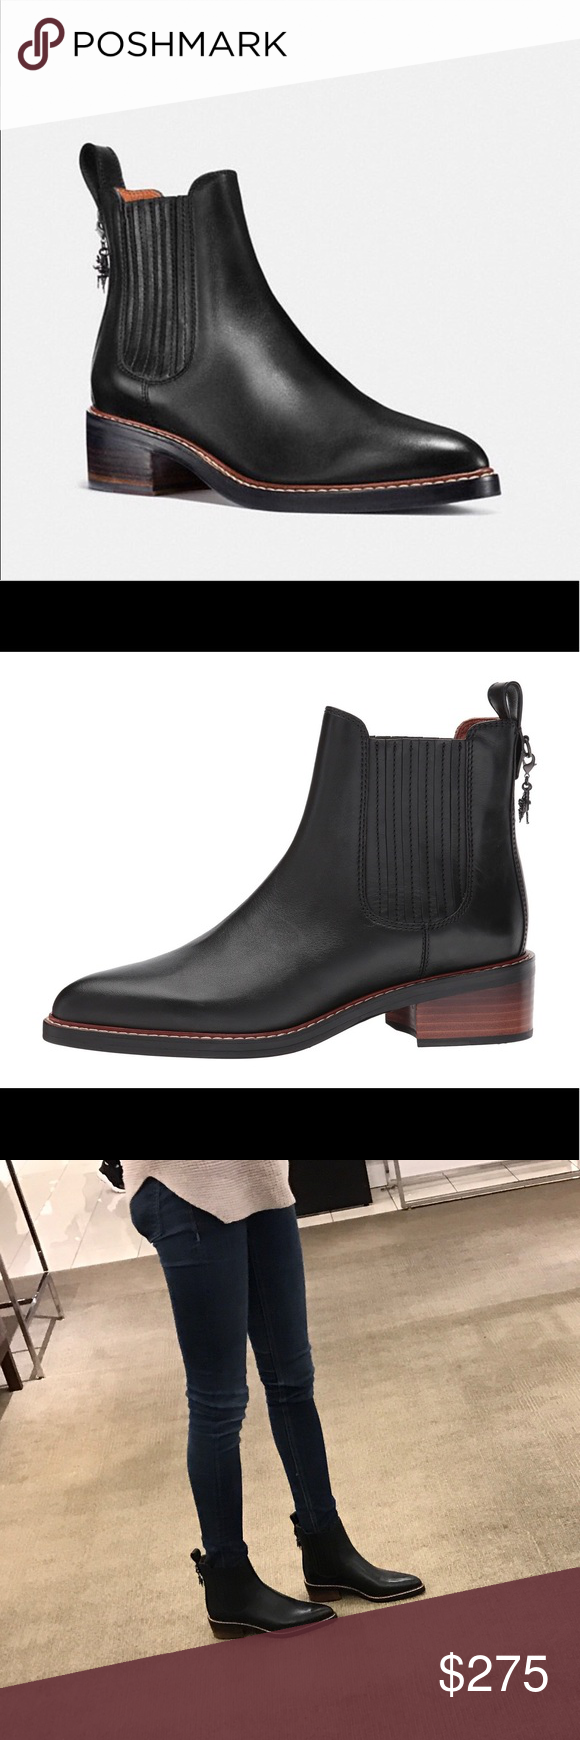 e49bd161b7 50% off coach bowery chelsea ankle booties a4978 794e4